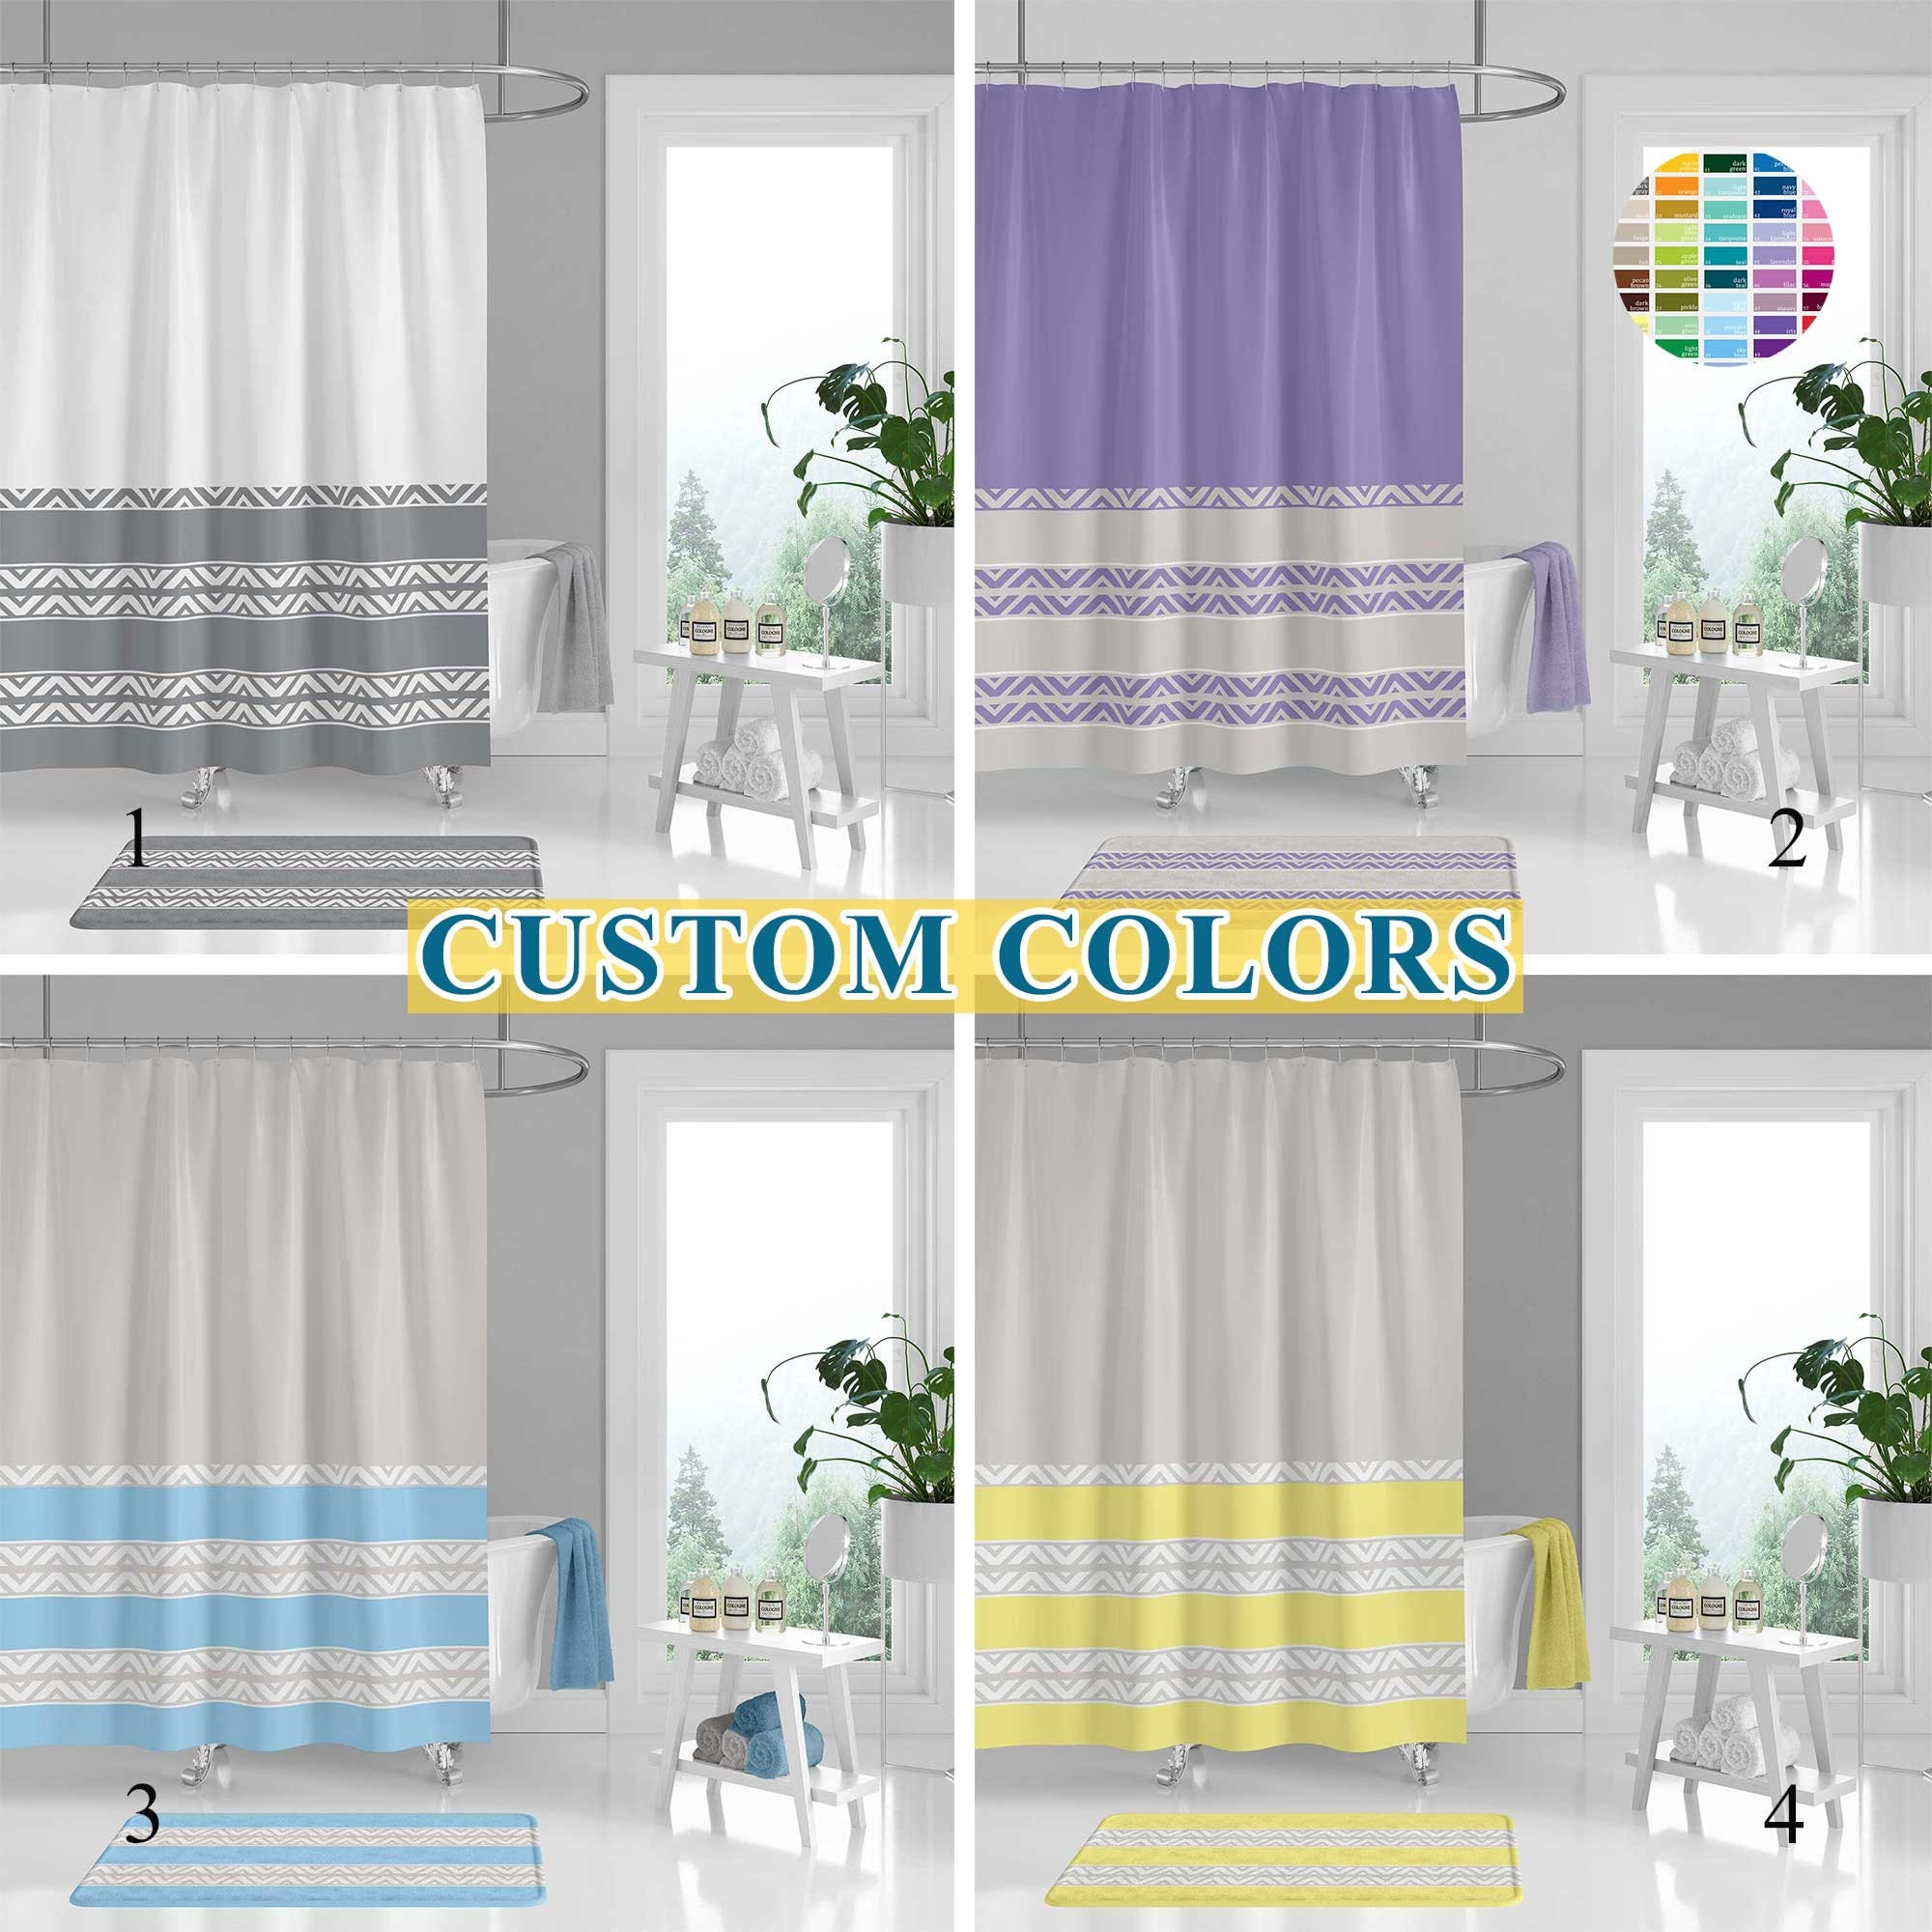 Striped Shower Curtain Set Bath Mat Chevron Minimalist Elegant Customizable Bath Curtain Unique Gray Blue Lavender Yellow White